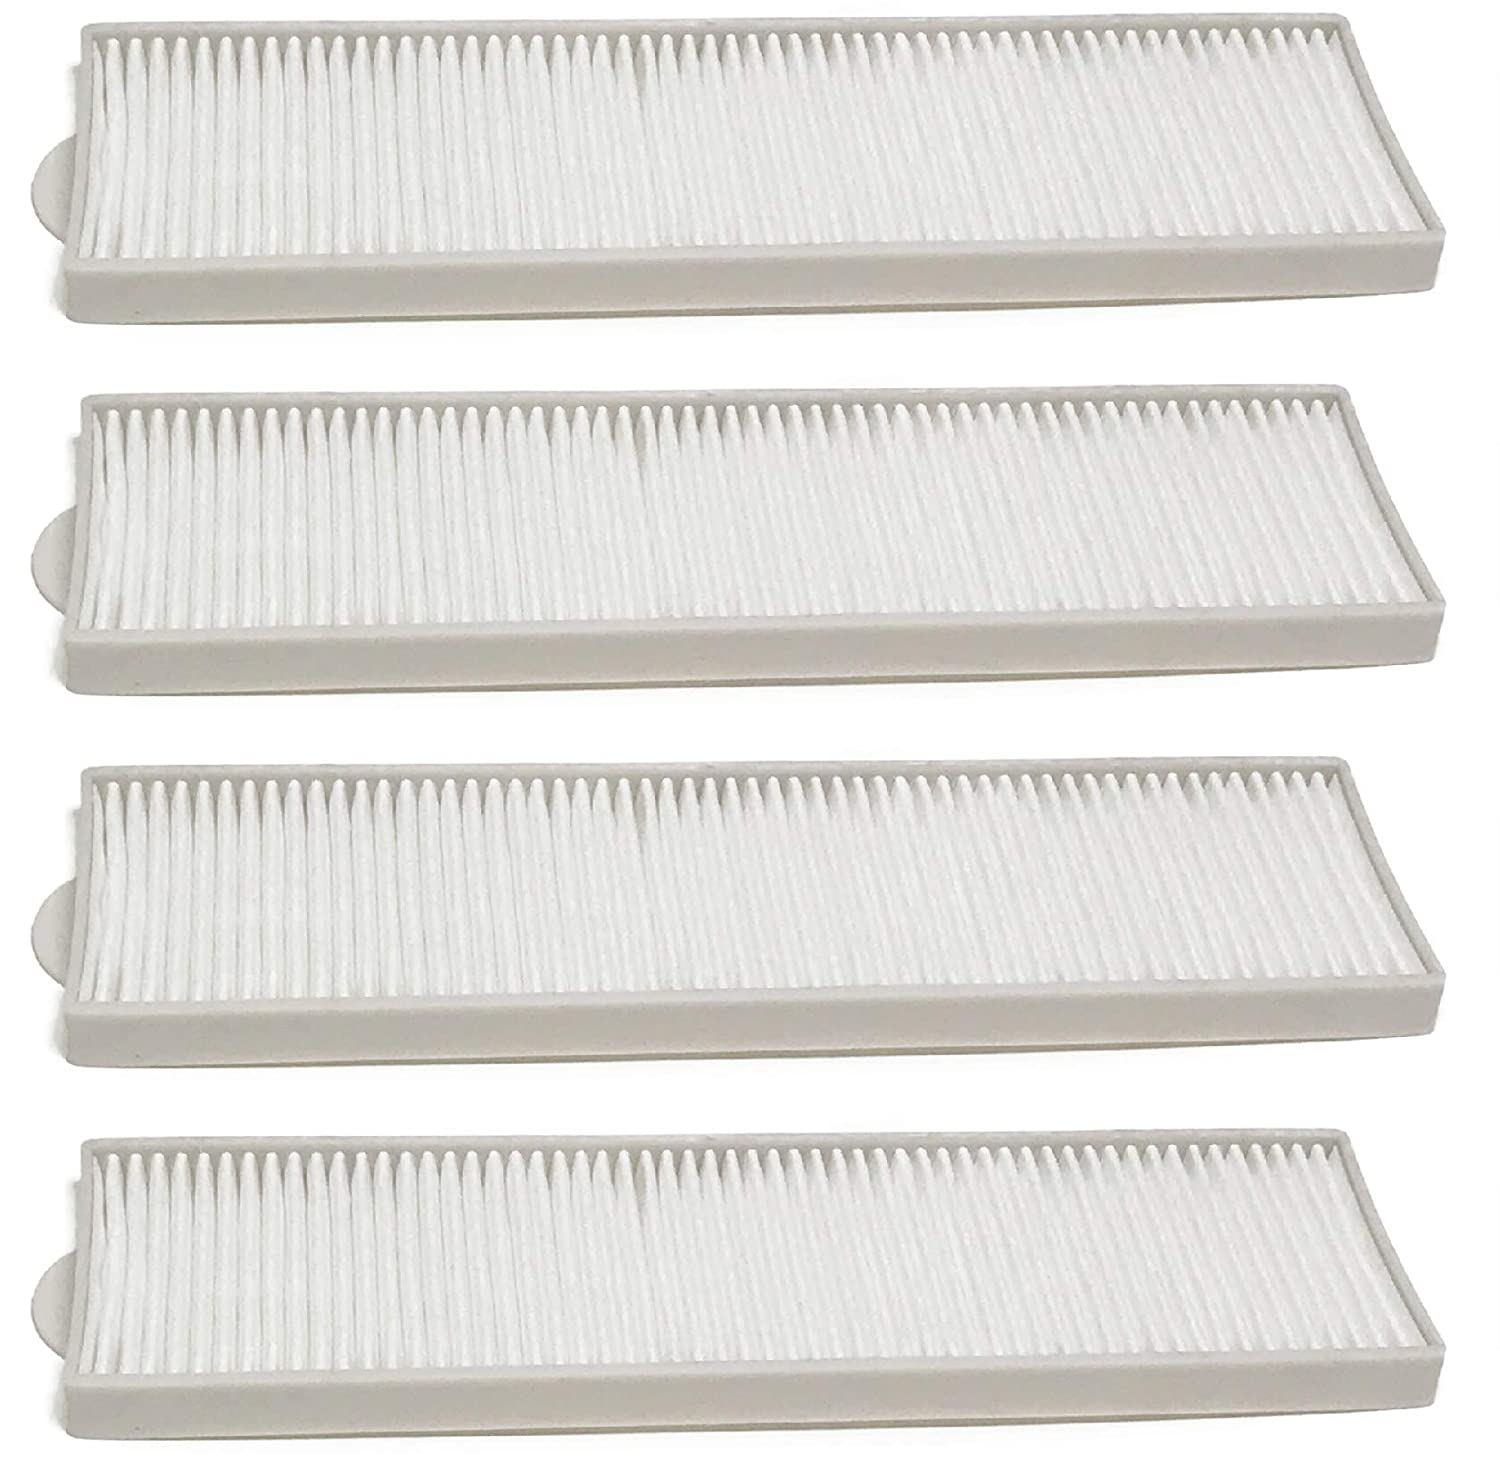 Nispira Replacement Style 8 and 14 HEPA Filter Compatible with Bissell Upright Vacuum Part #3091. Fits 3750/6595 Bissell Lift-Off series. 4 Filters